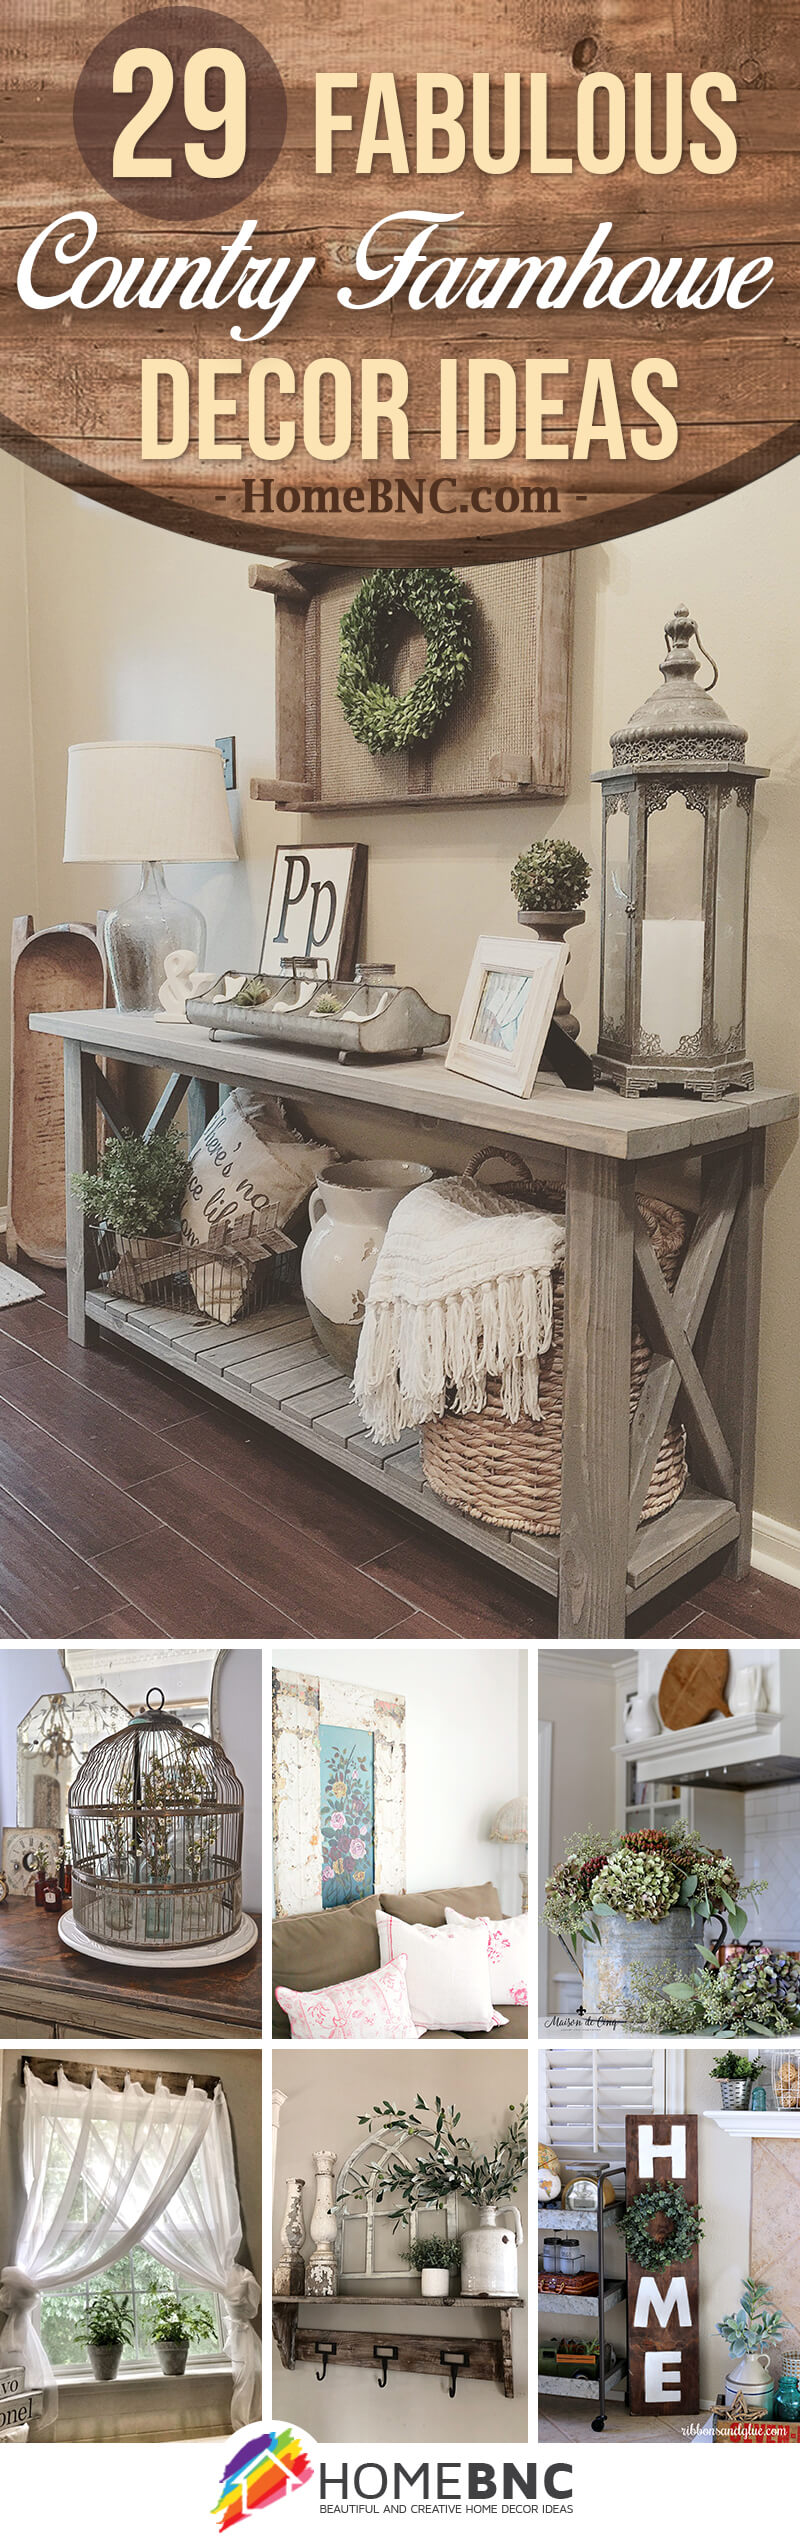 Country Farmhouse Decor Ideas